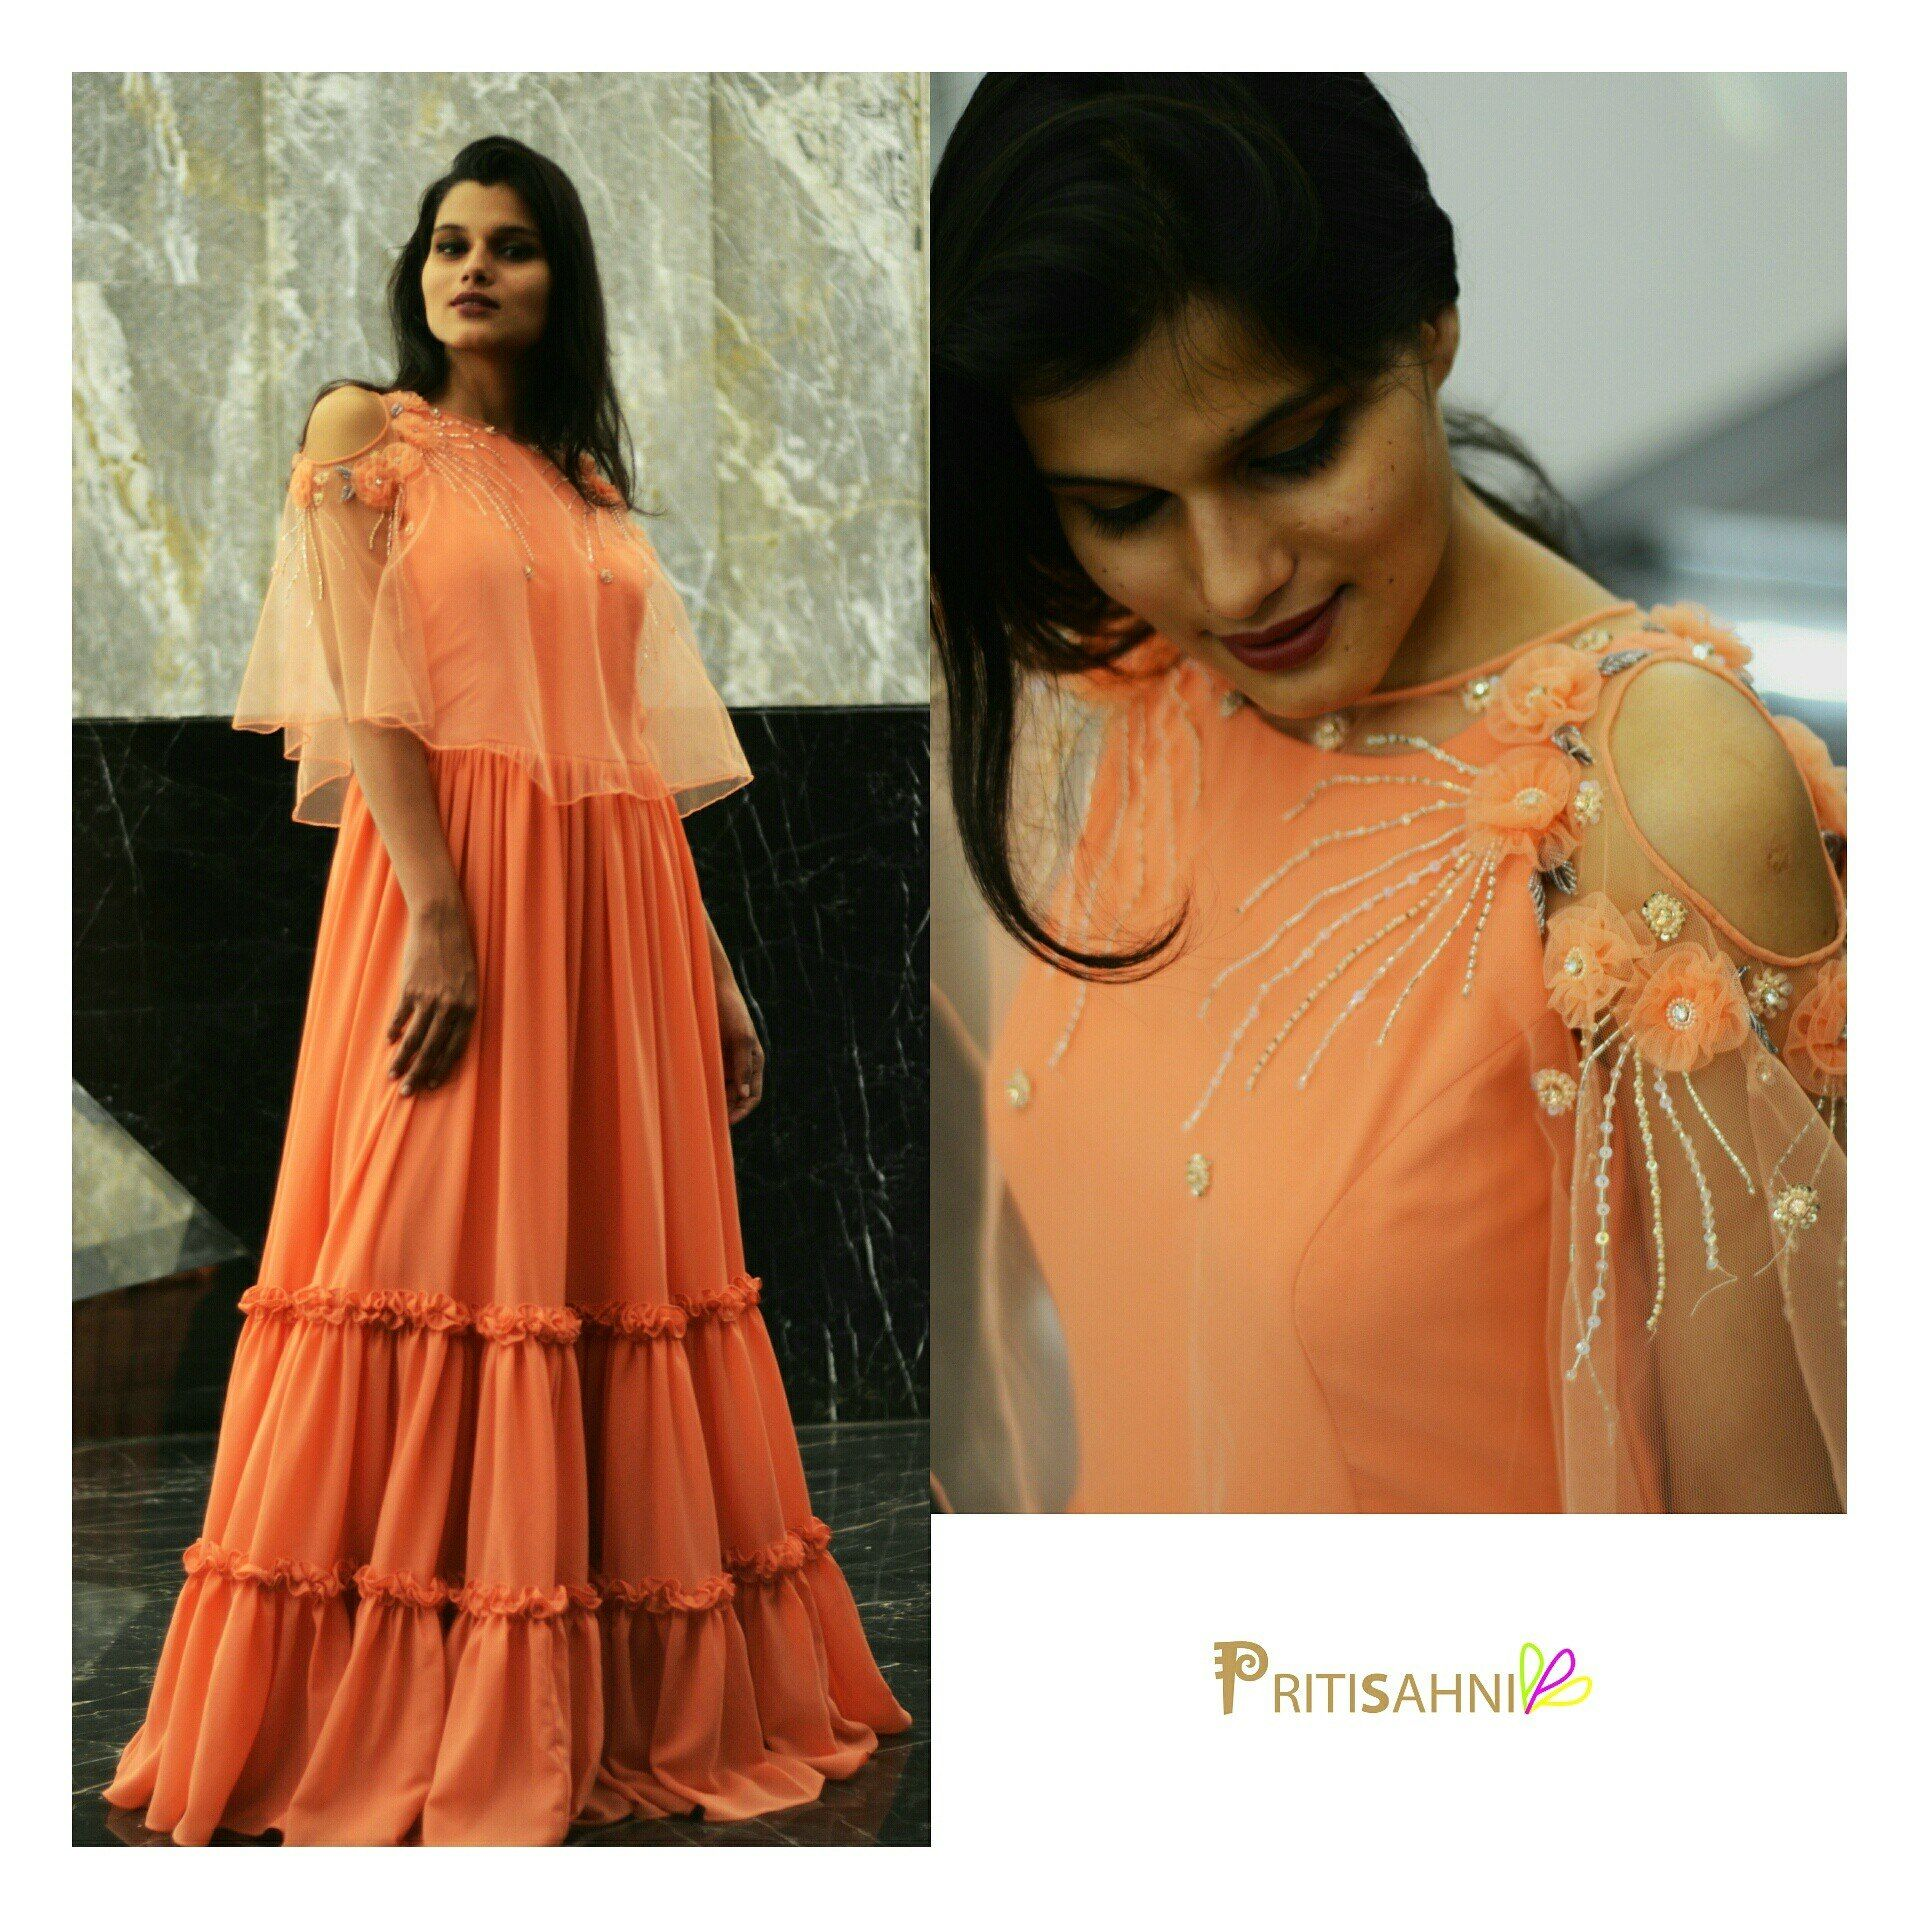 abff134e60 Tiers and Ruffles.Peach georgette gown with tiers and ruffle details ...